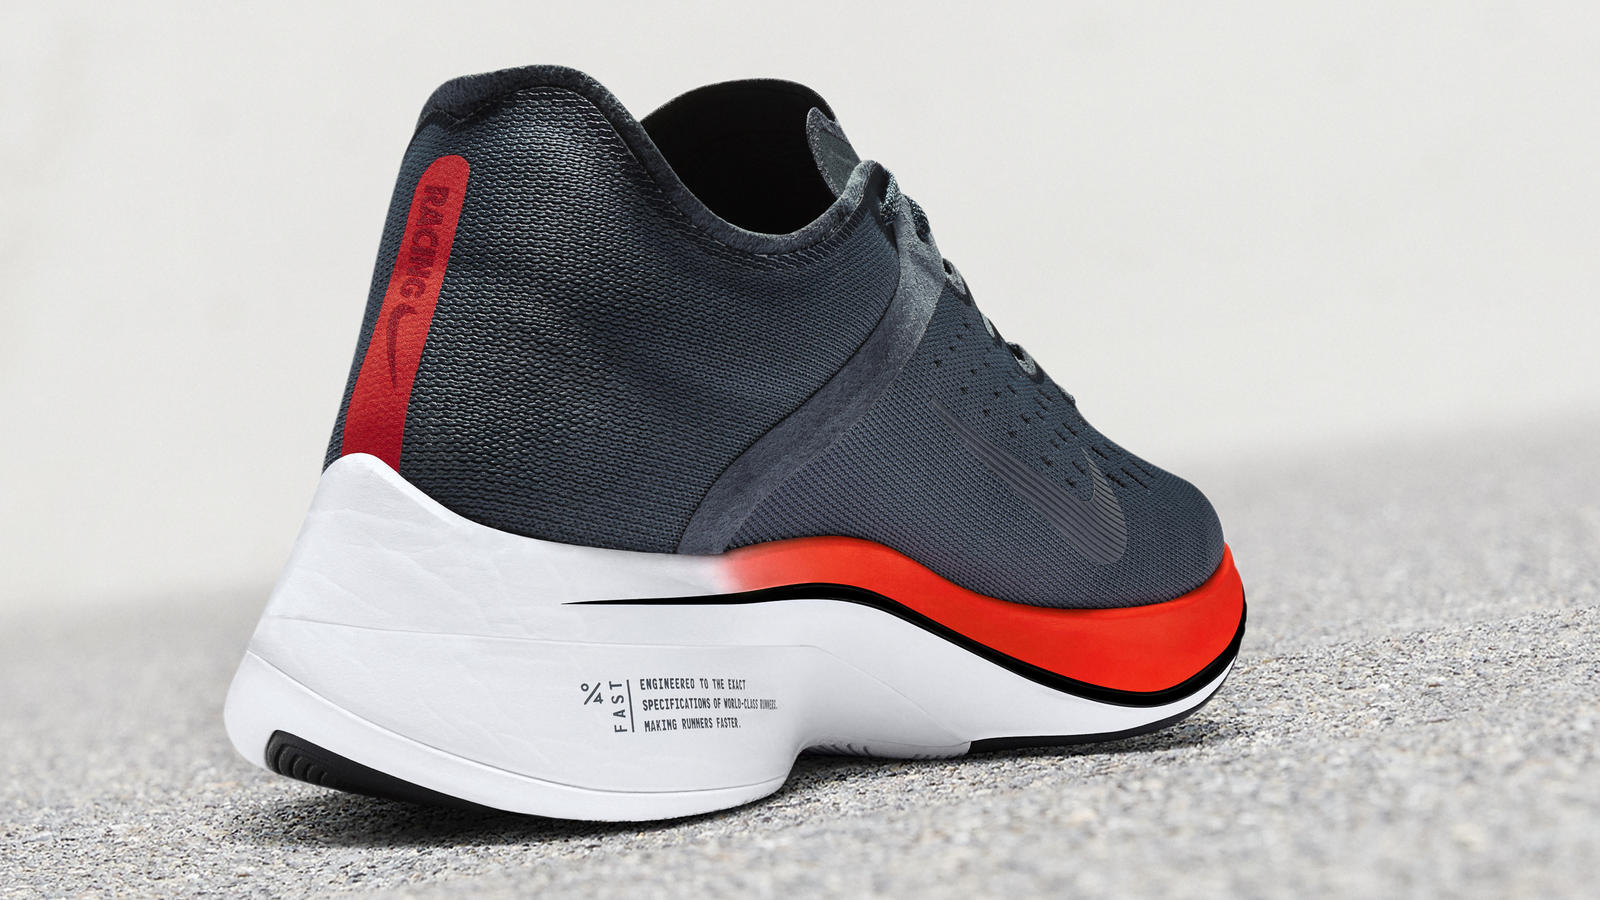 Sp17 rn vaporfly 400 detail01 hd 1600